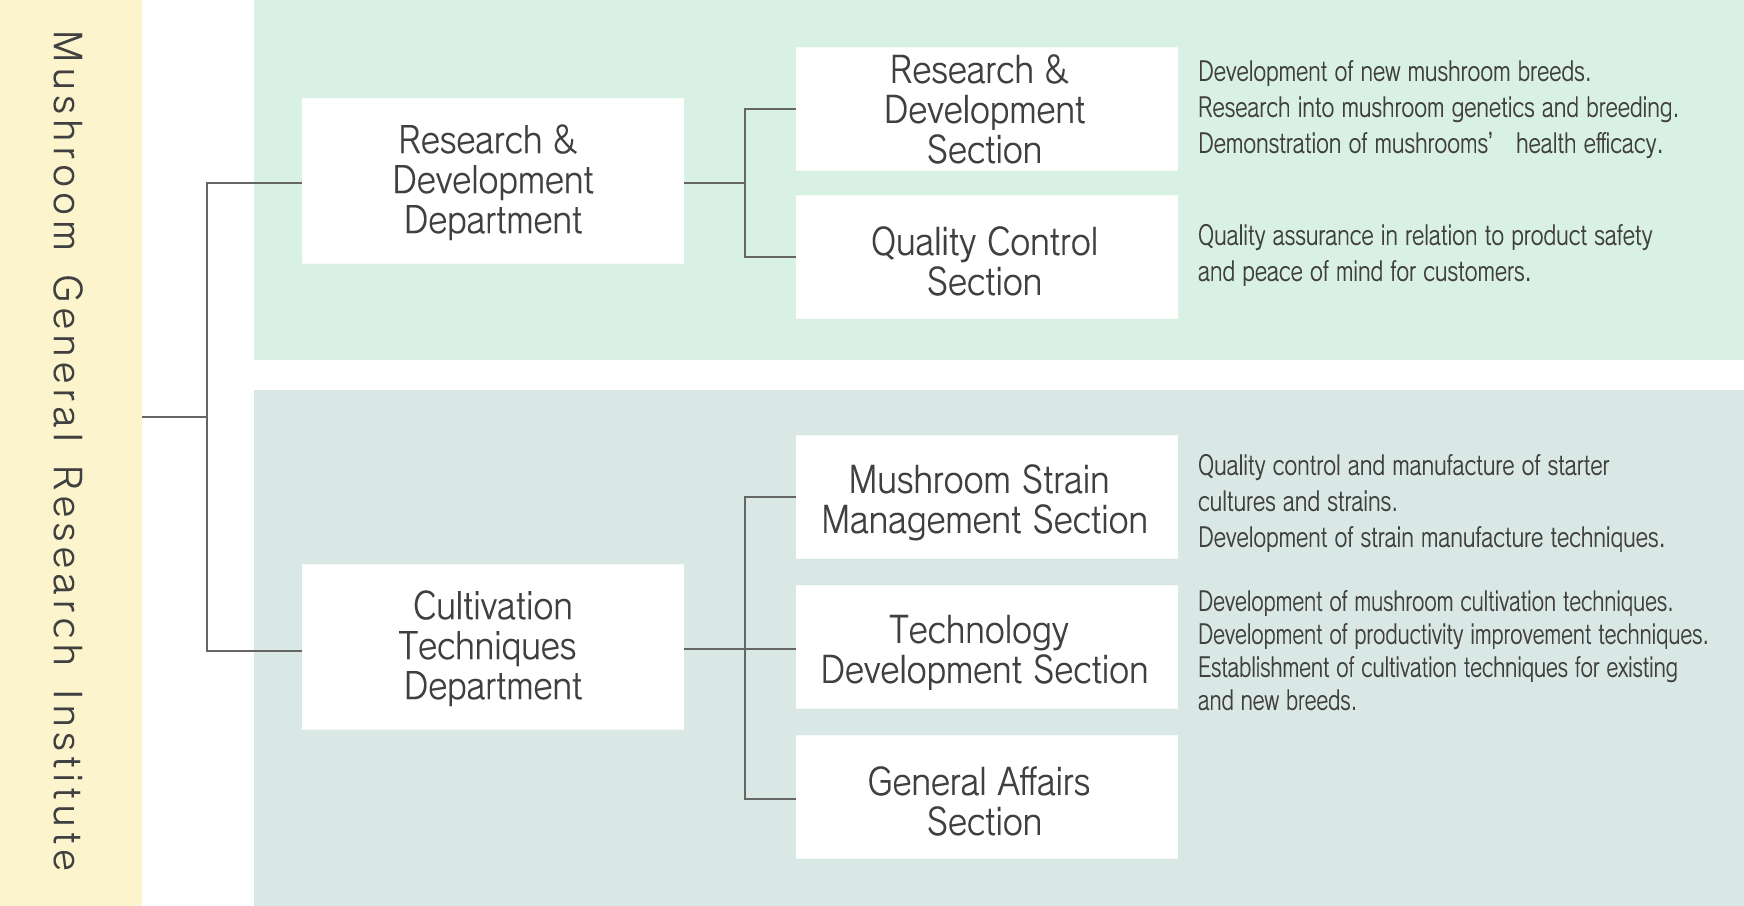 Research & Development Structure